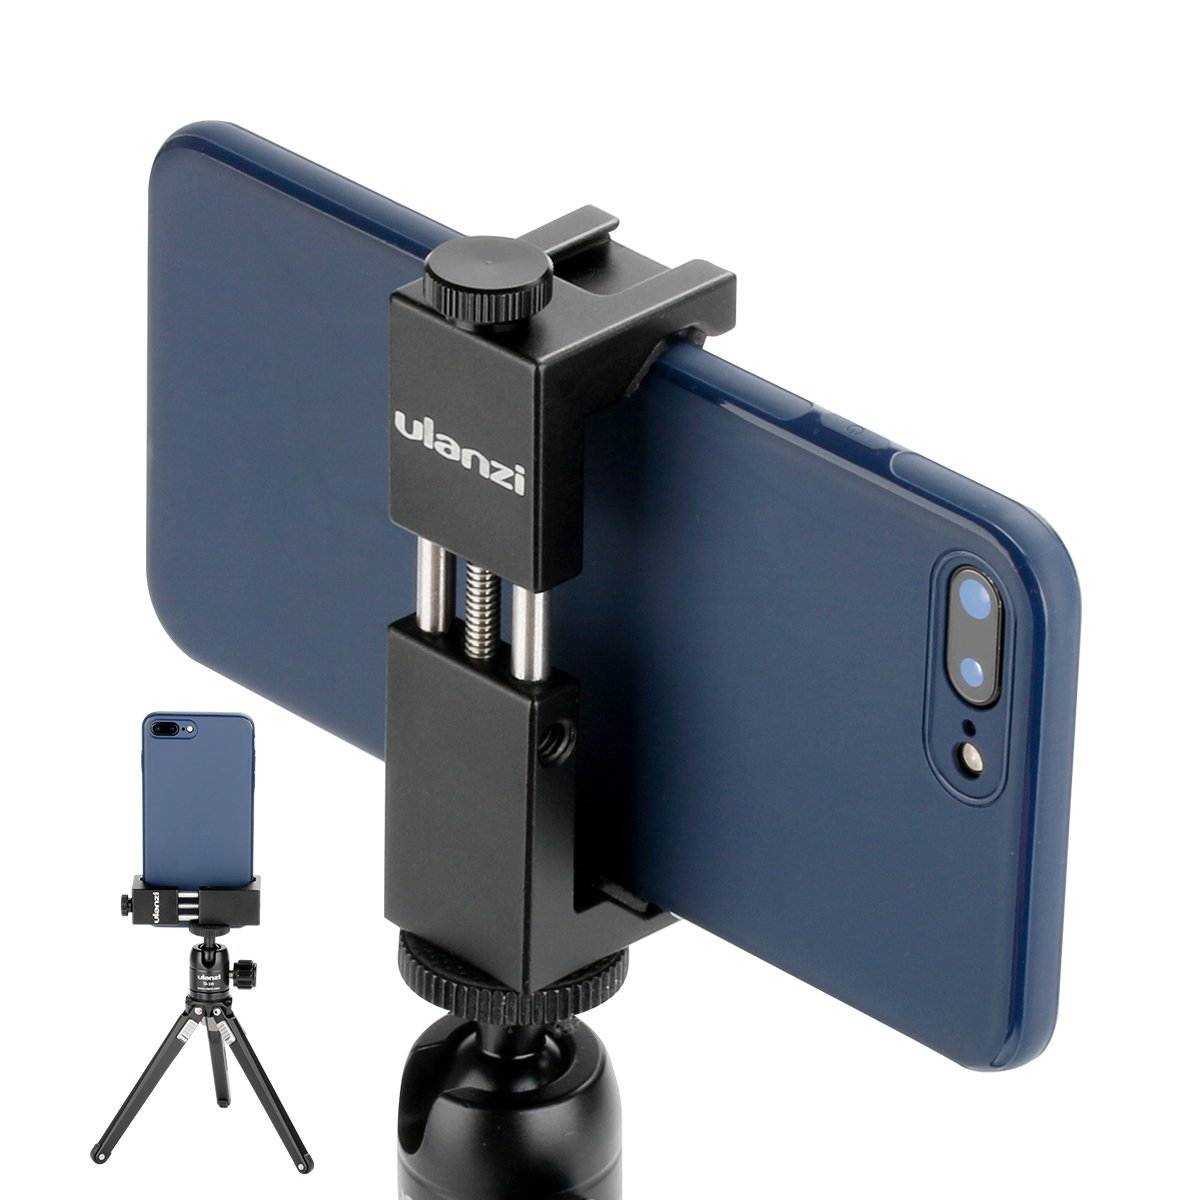 Ulanzi ST-02S Newest Aluminum Phone Tripod Mount w Cold Shoe Mount, Support Vertical and Horizontal, Universal Metal Adjustable Clamp for Apple iPhone X 8 7 6S Plus Sumsang Android Smartphones